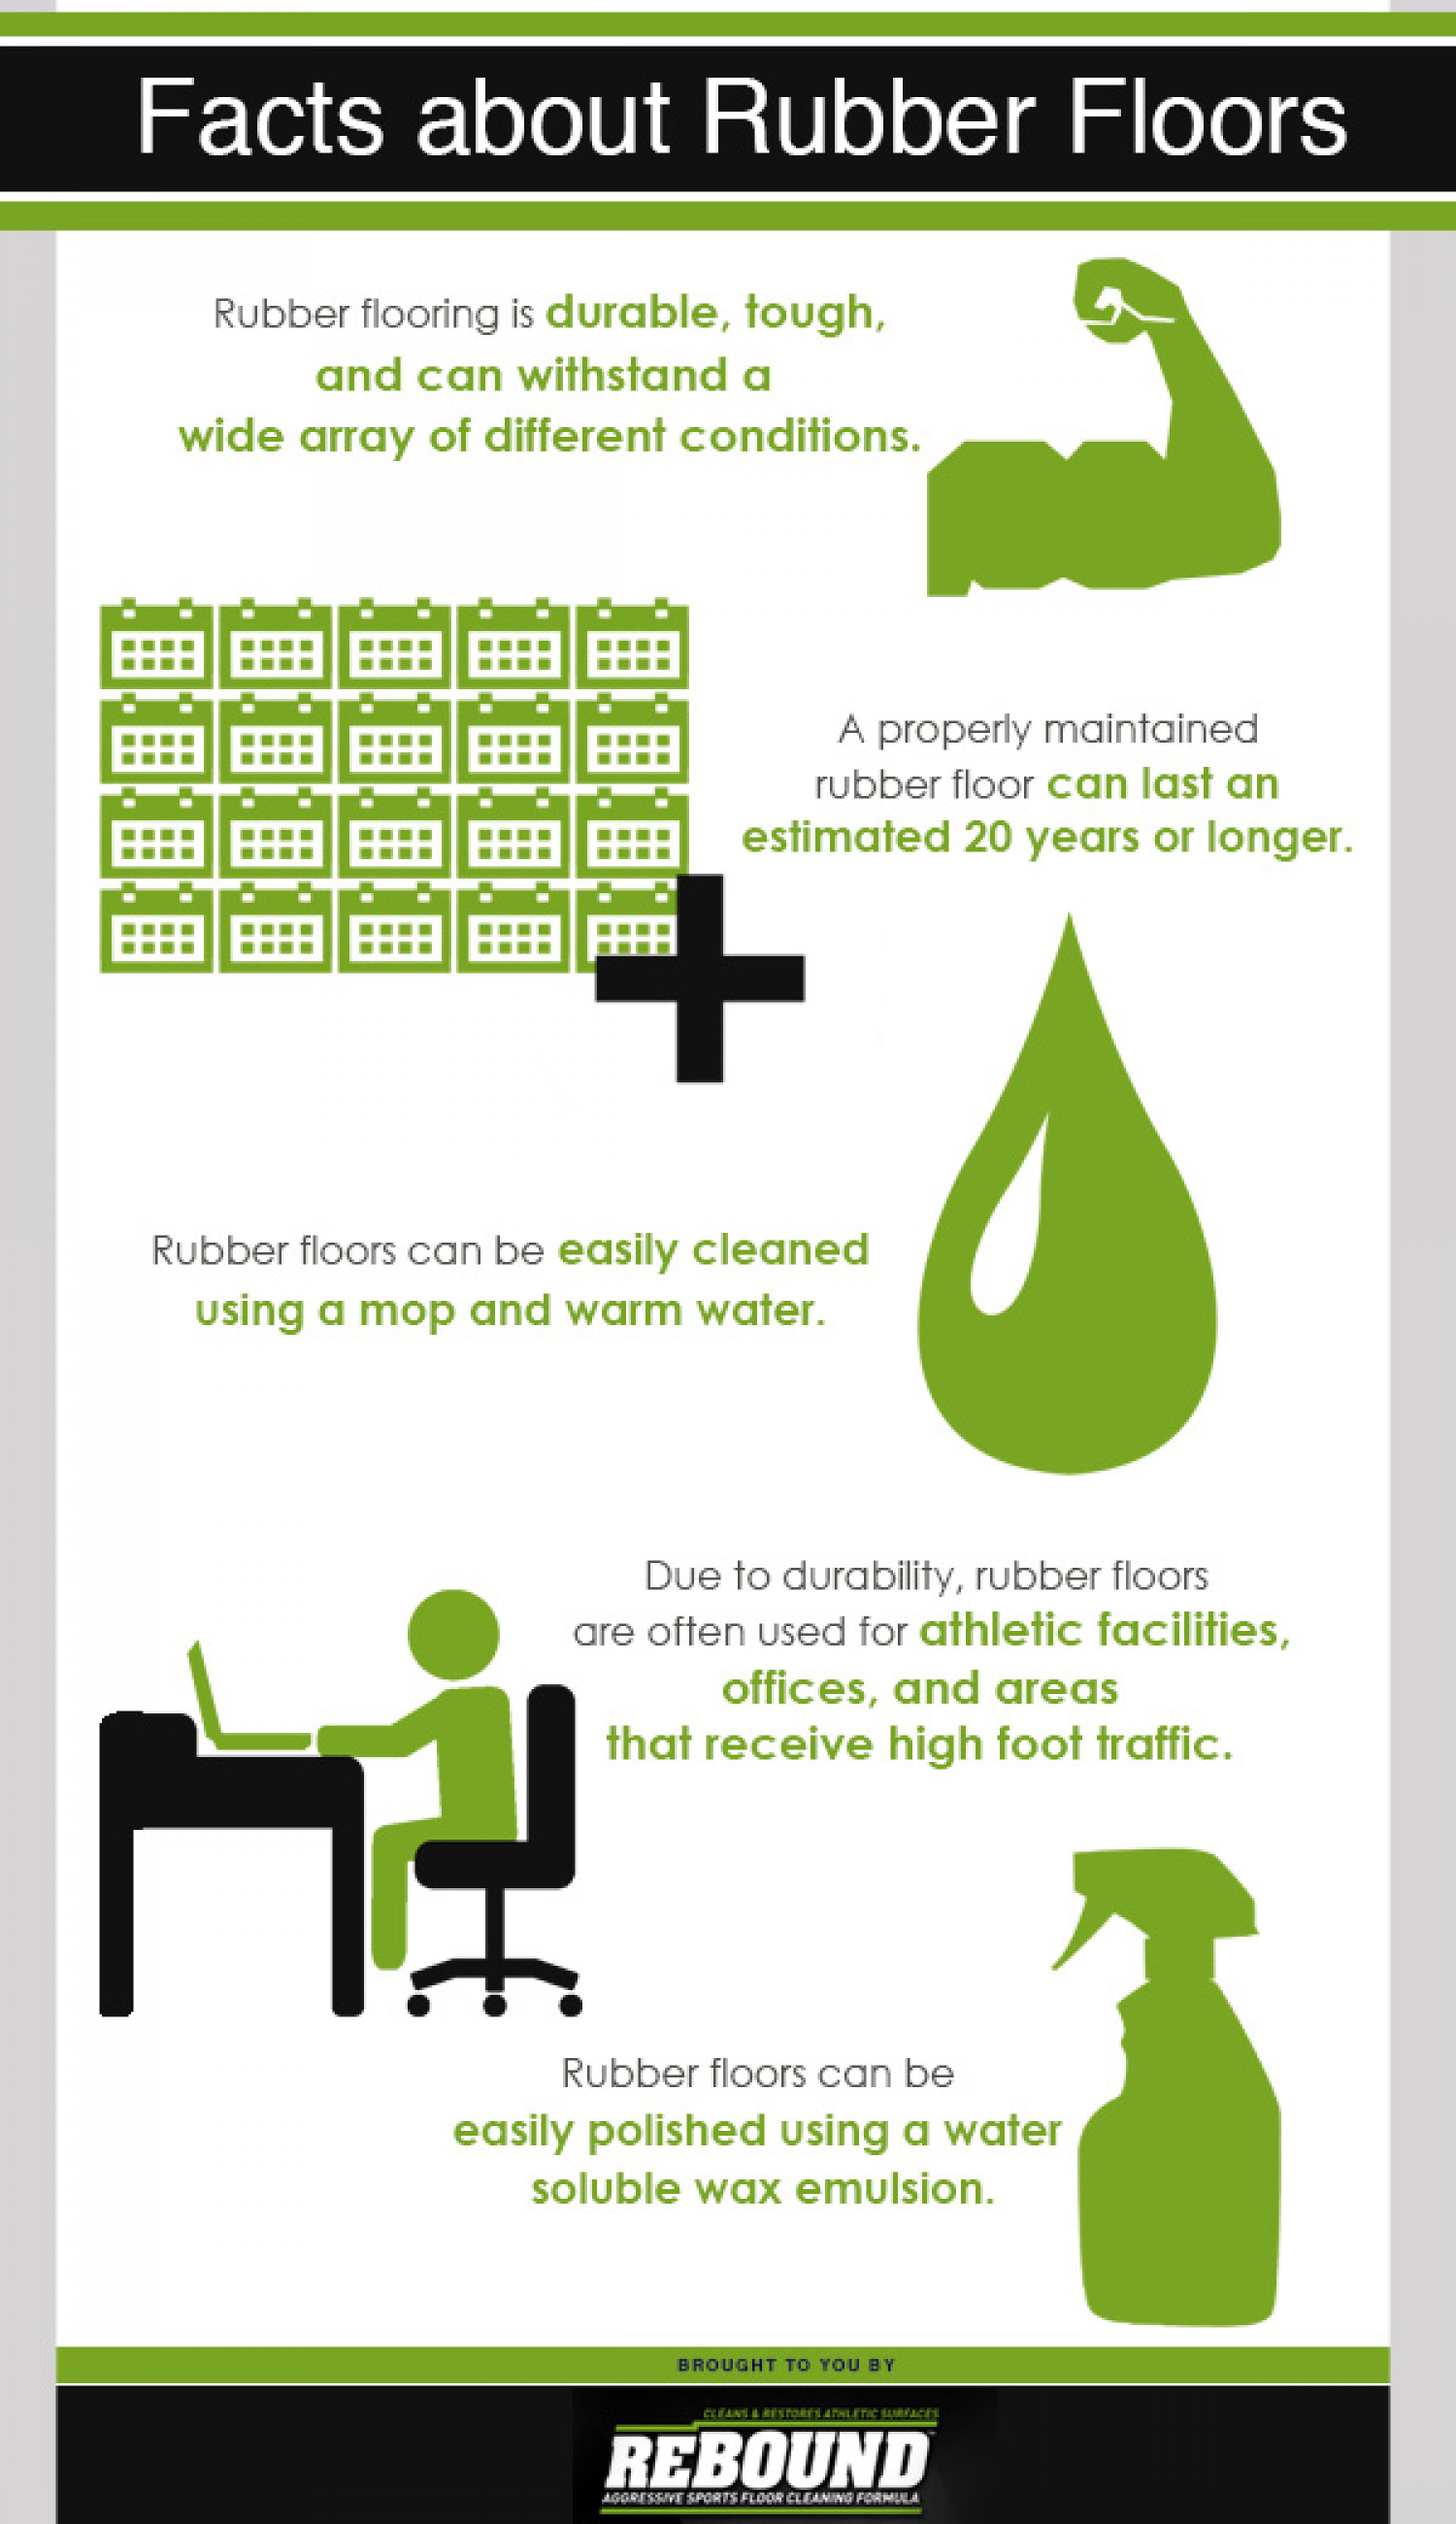 Facts About Rubber Floors Infographic